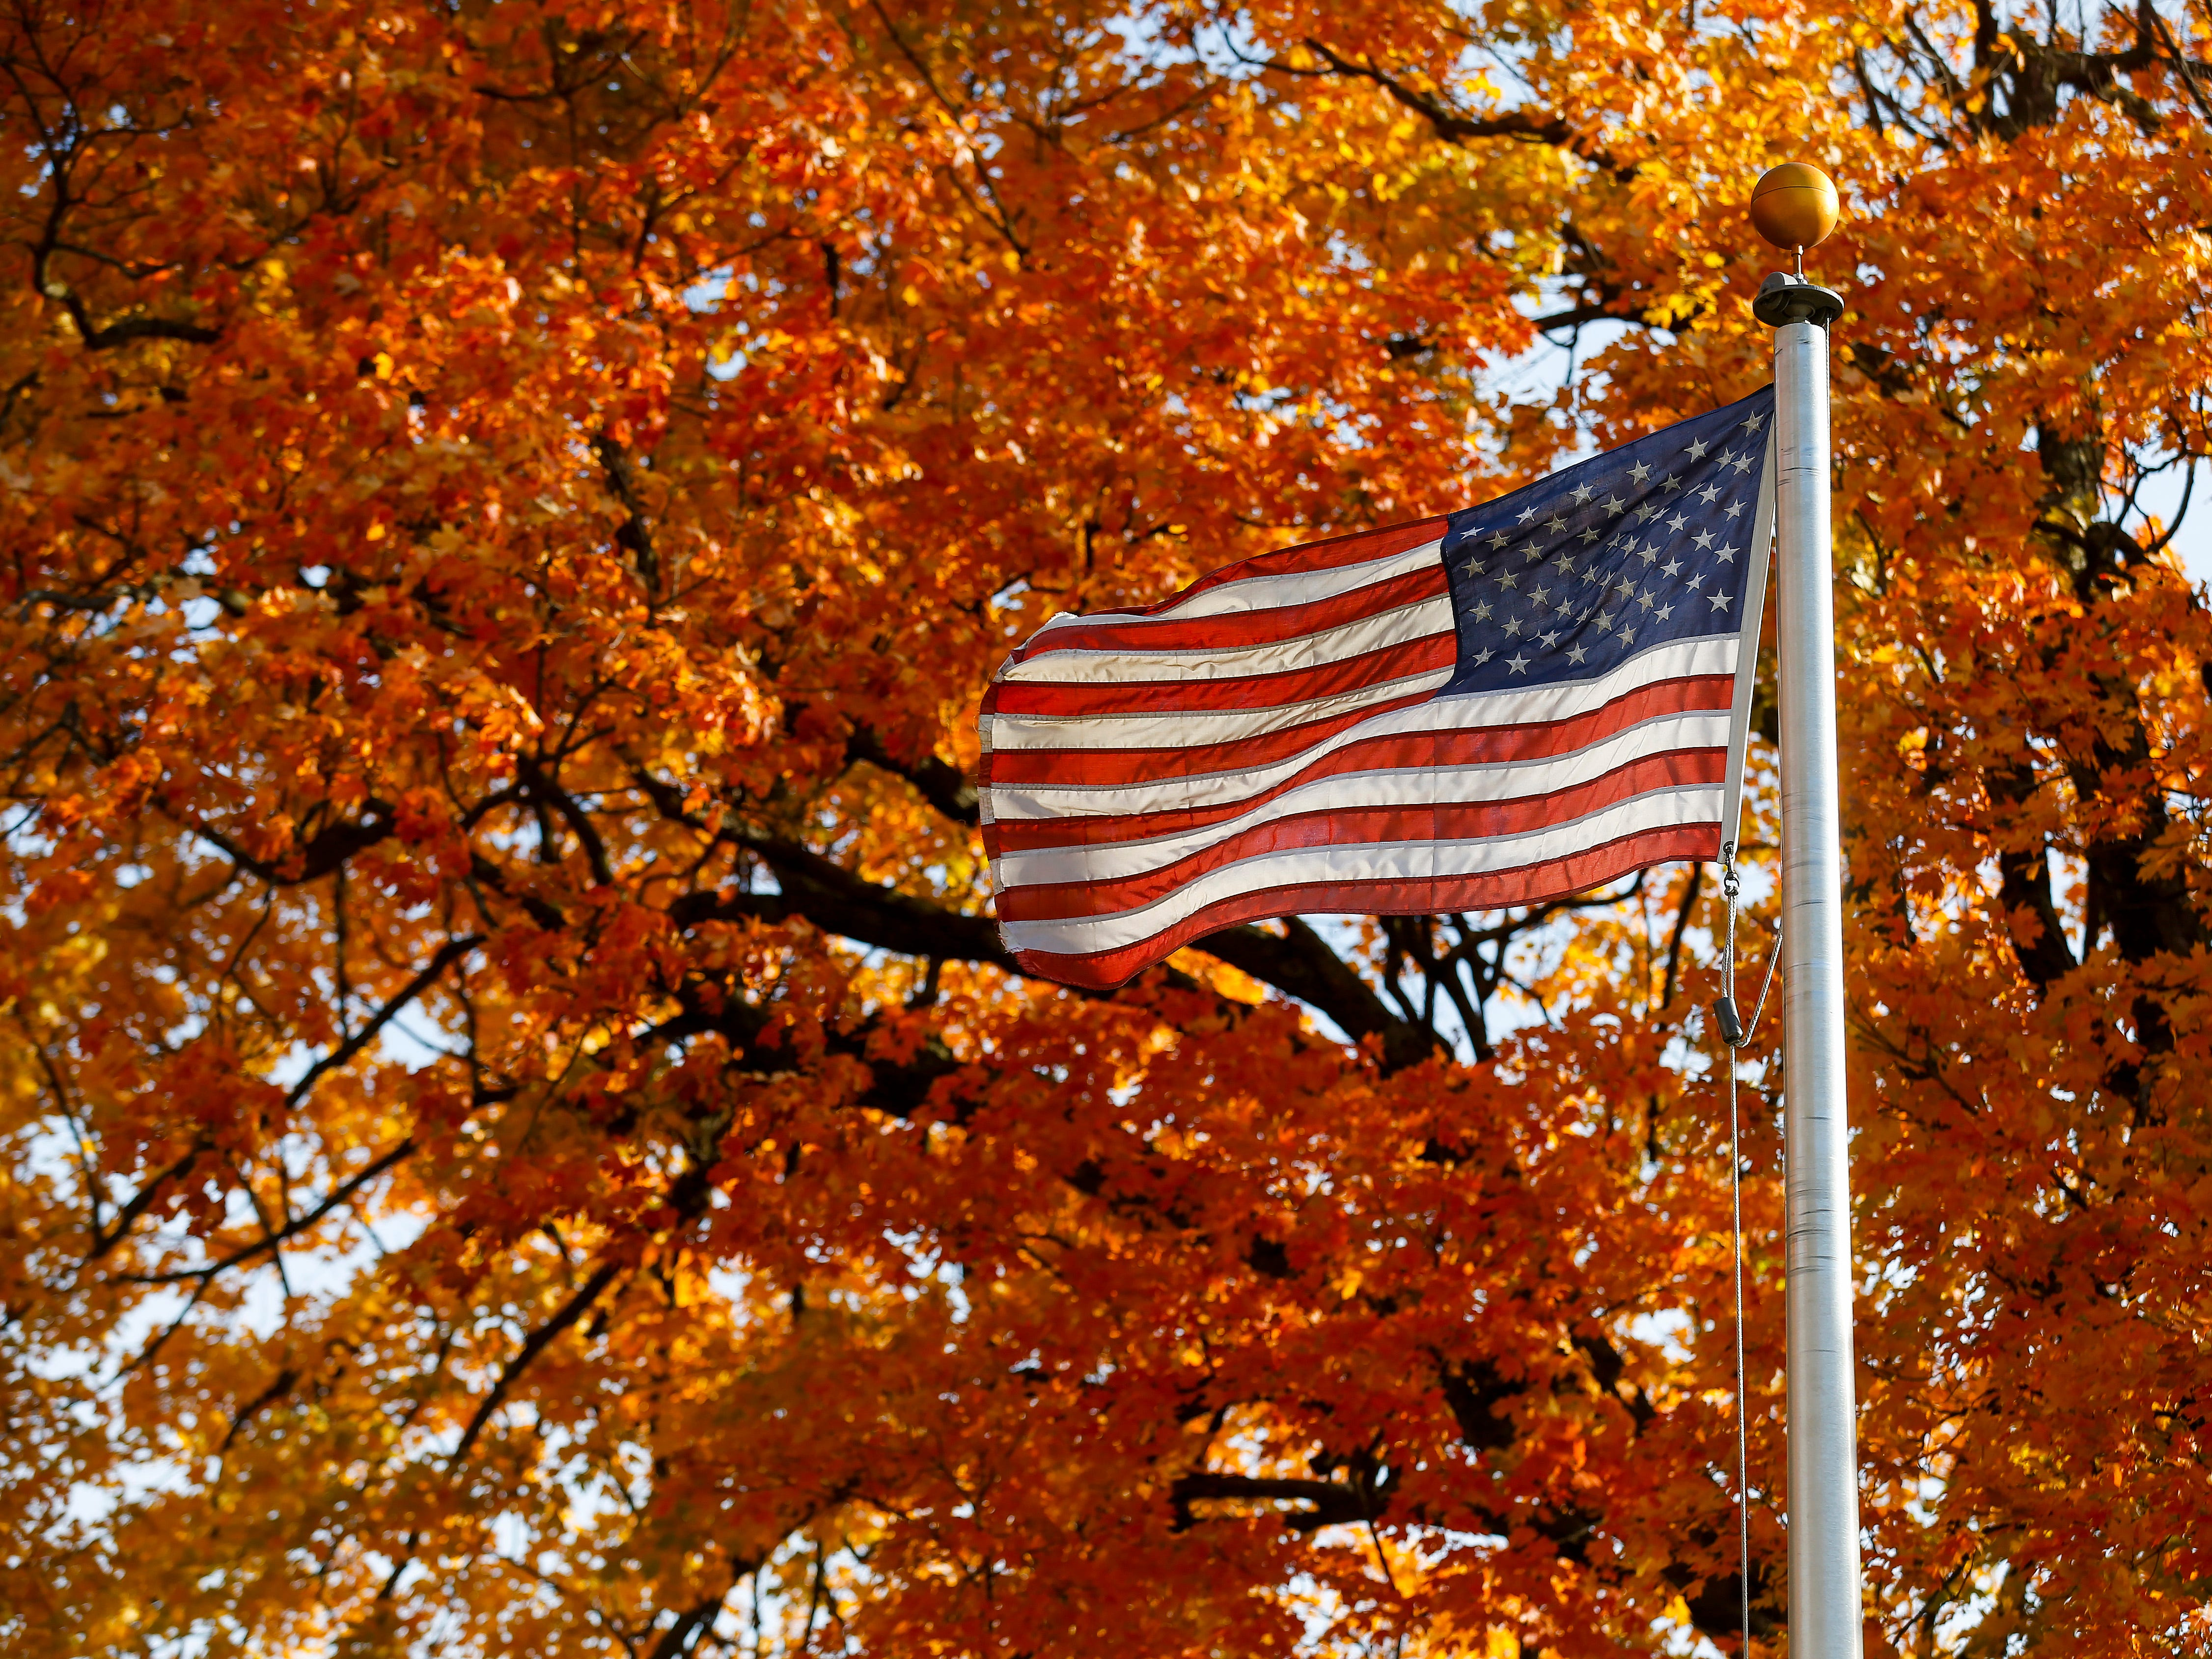 Veteran's Day: For all of us who served and returned